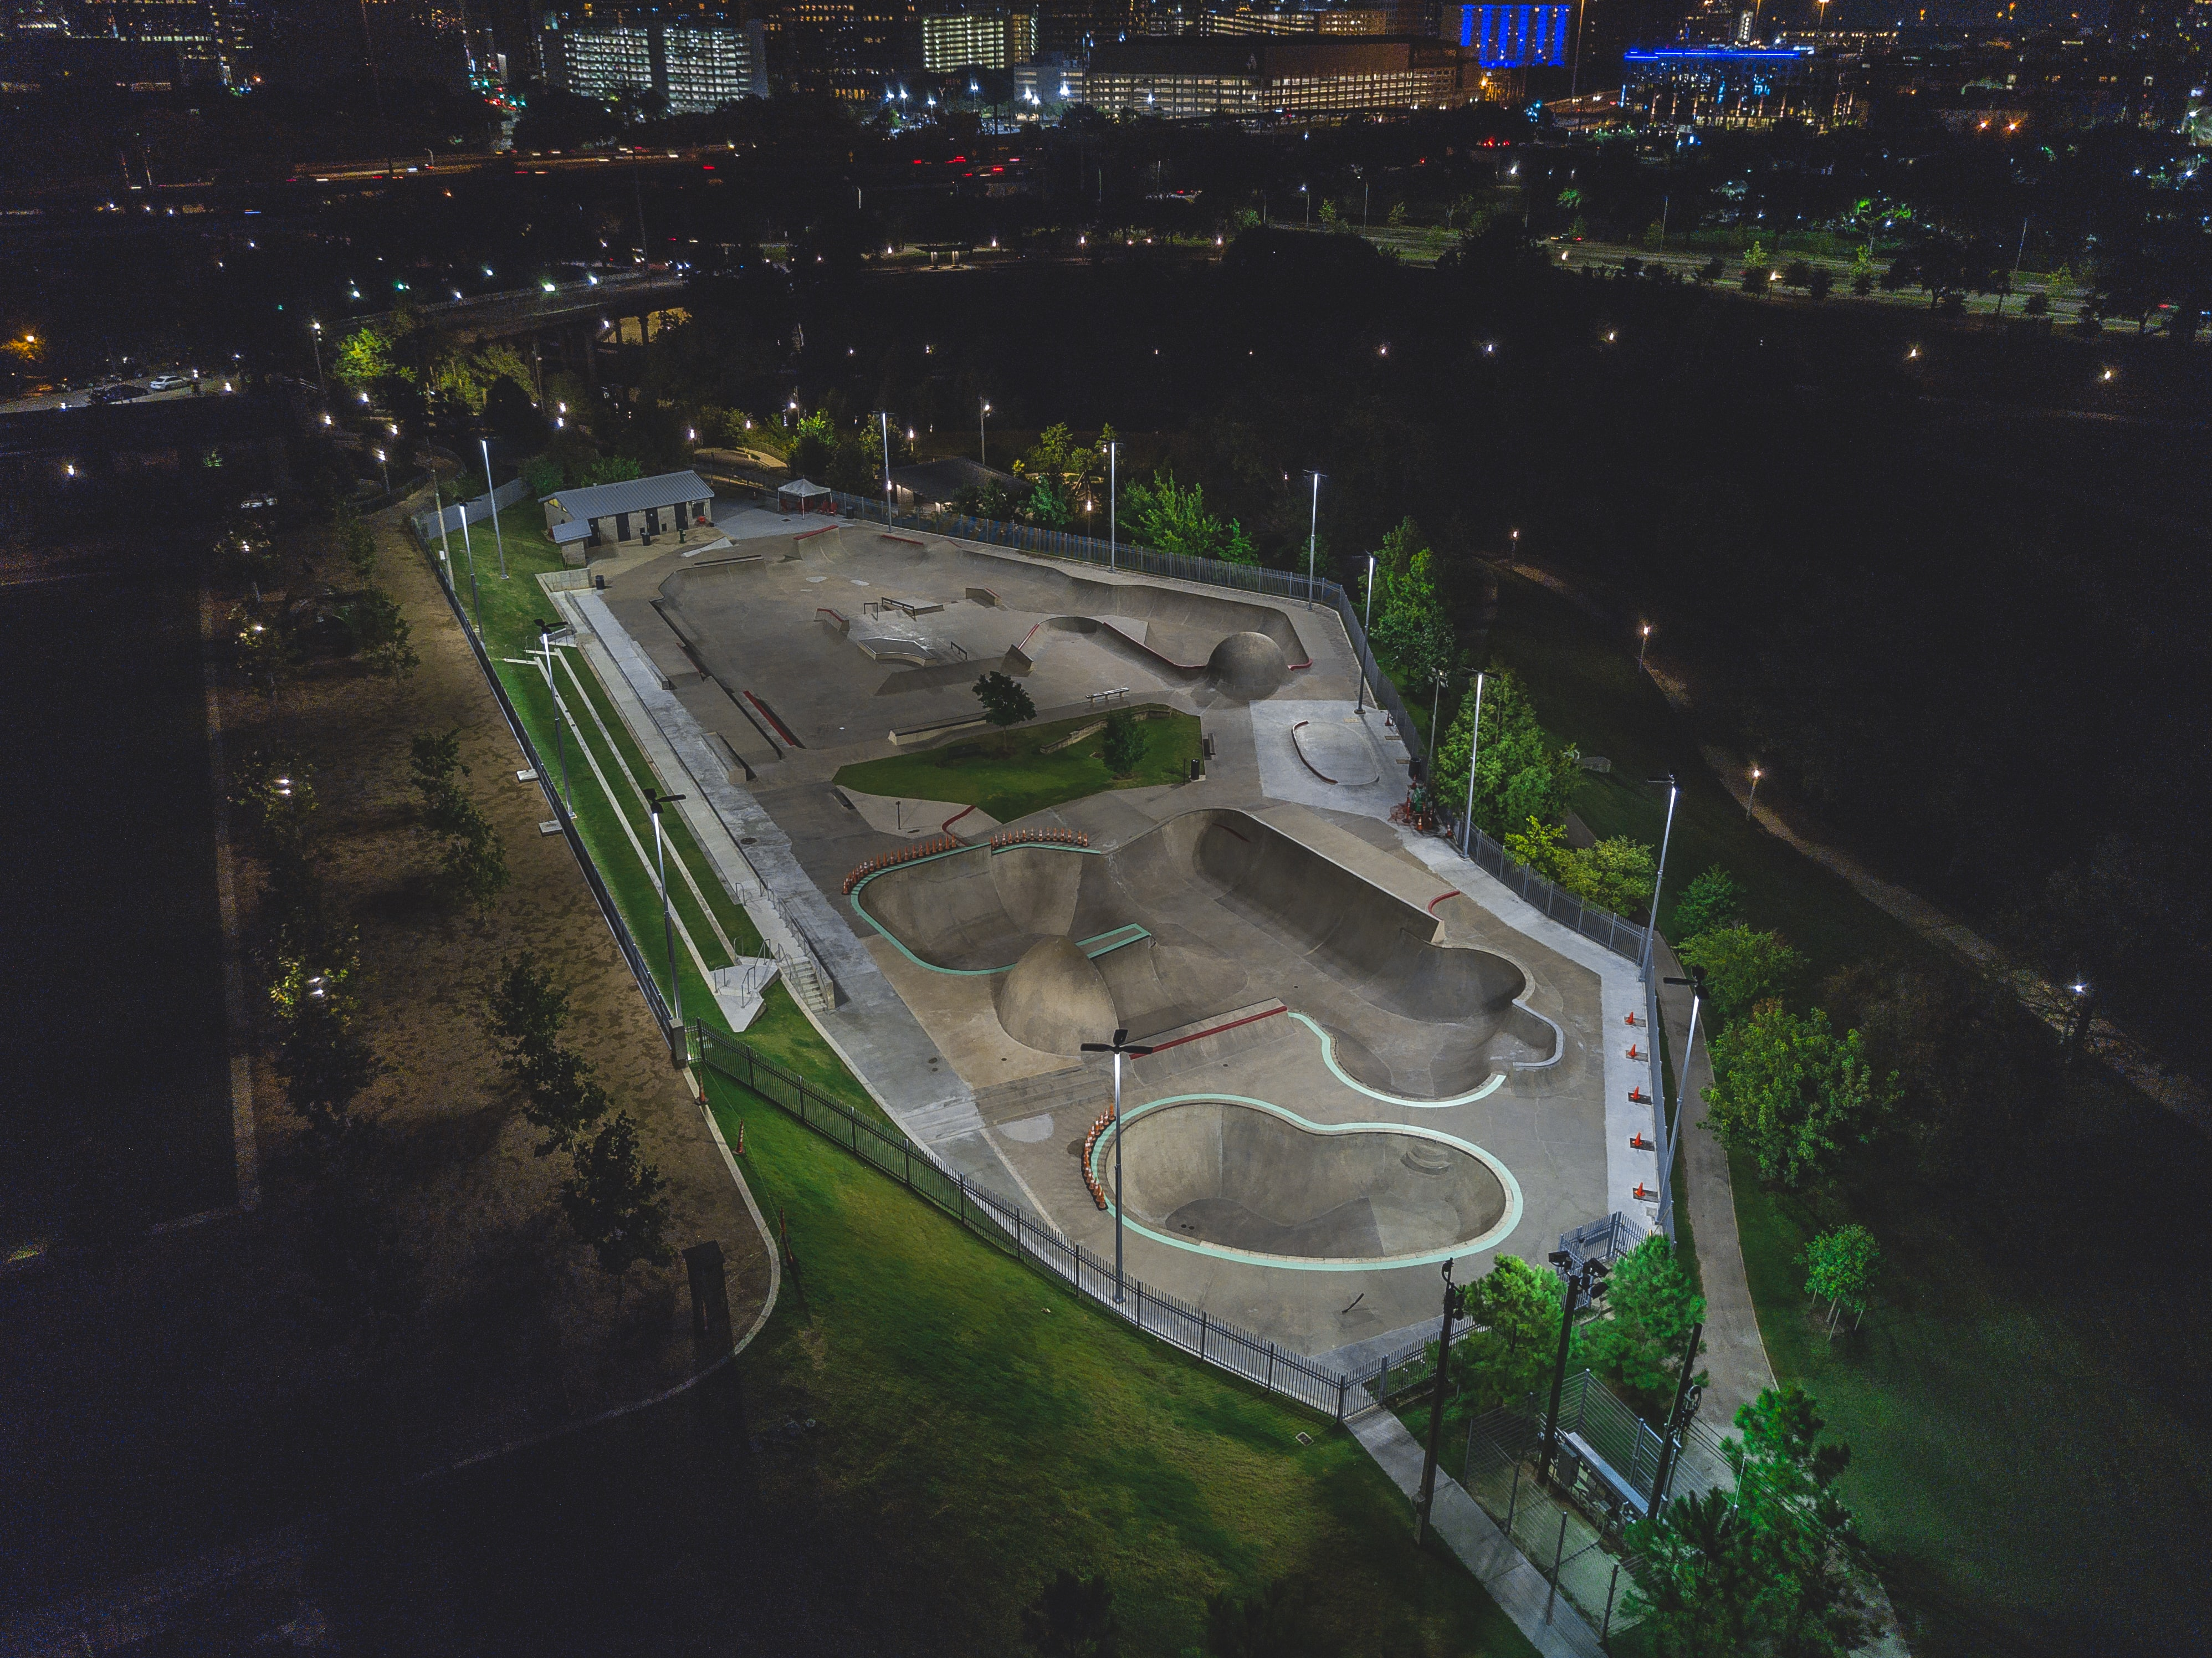 A drone shot of a skate park at night in Washington Ave./ Memorial Park, Houston, Texas, United States